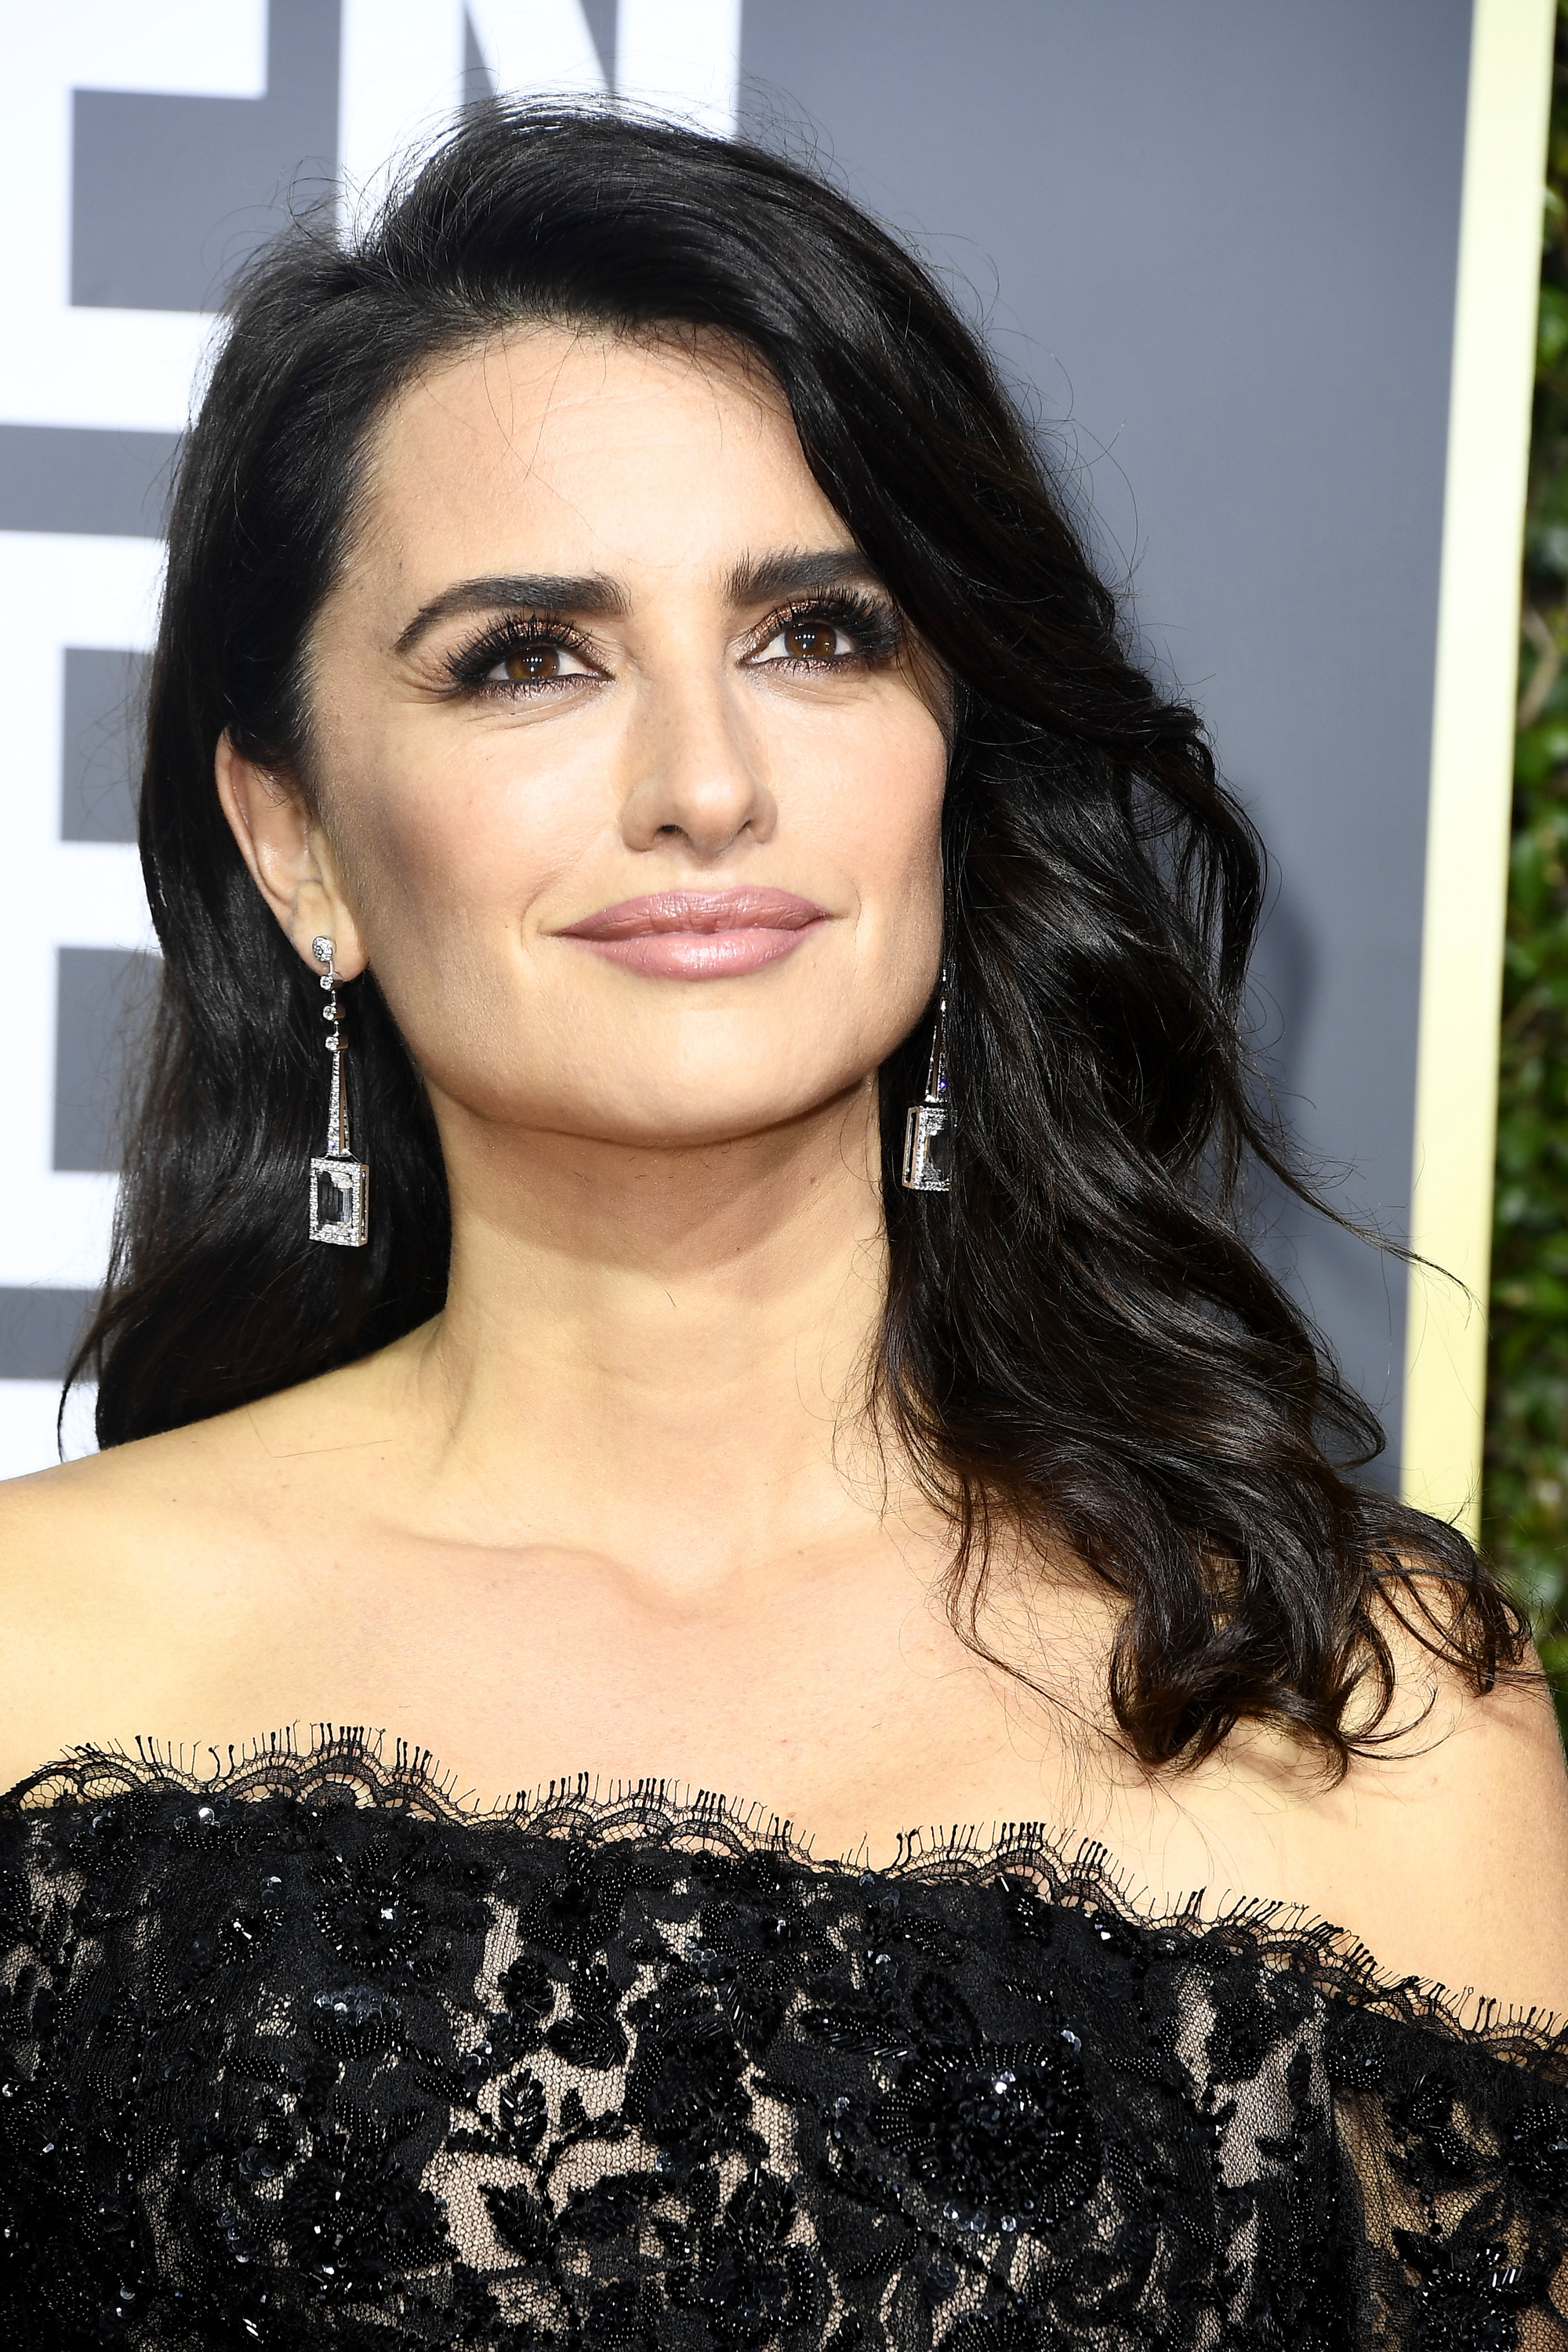 BEVERLY HILLS, CA - JANUARY 07:  Actor Penelope Cruz attends The 75th Annual Golden Globe Awards at The Beverly Hilton Hotel on January 7, 2018 in Beverly Hills, California.  (Photo by Frazer Harrison/Getty Images)